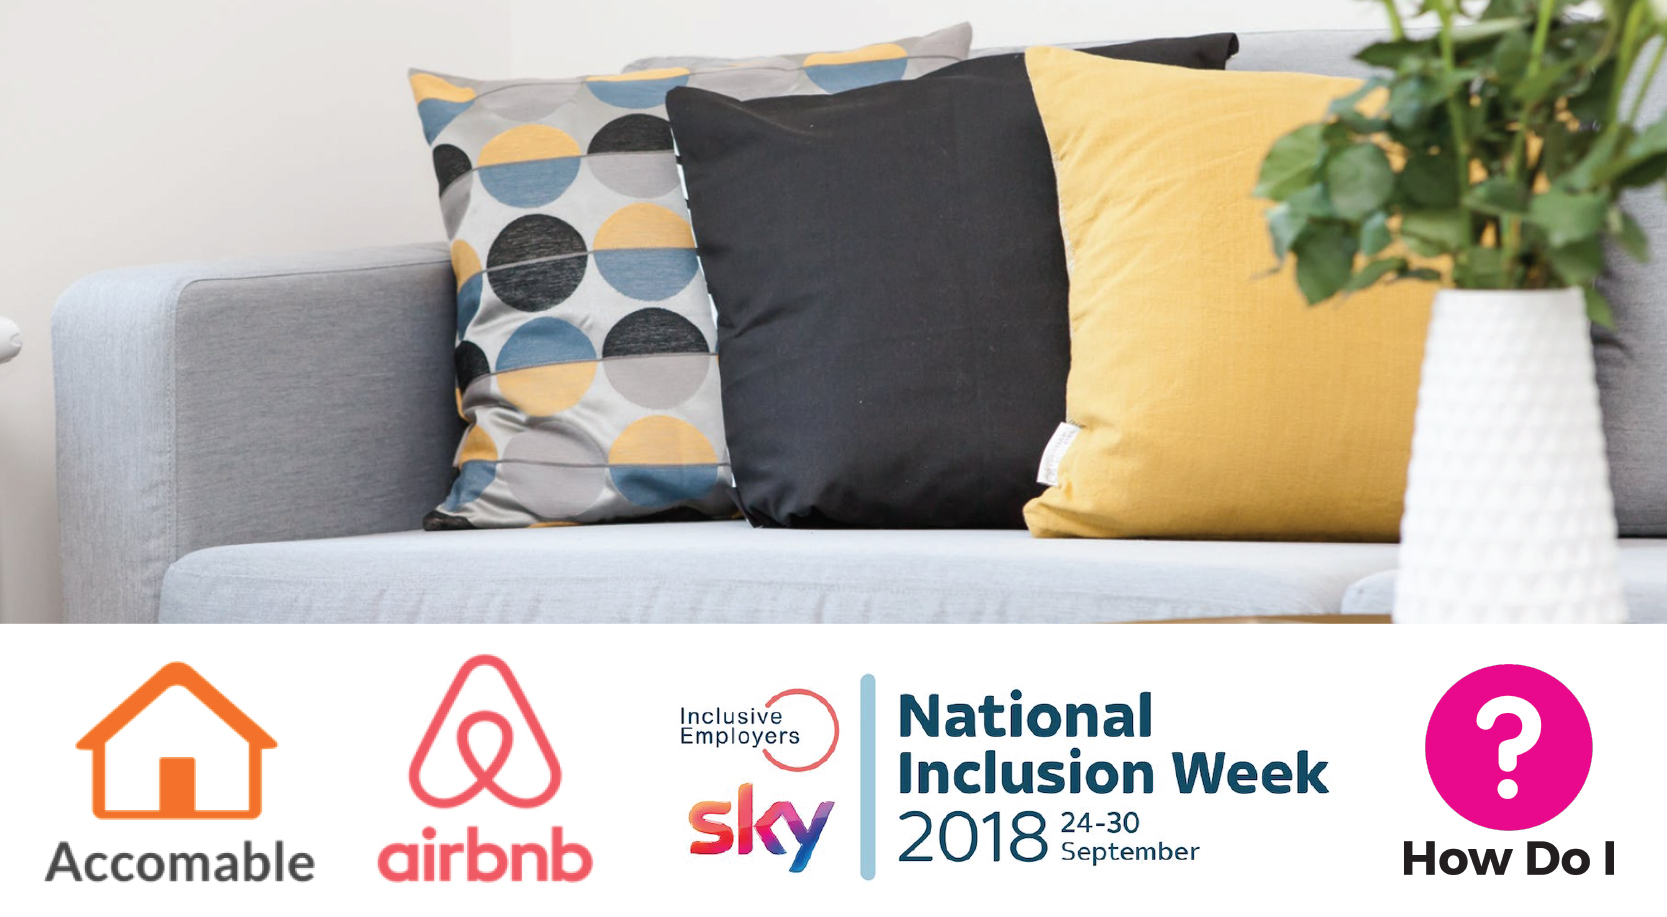 The top section of the header shows a couch with three cushions and a pot with green plants, the below section has the Airbnb logo (a large A), the Accomable logo (a small orange house), the National Inclusion Week Logo (which includes the Inclusive Employers and Sky logo and the date the campaign is taking place - 24-30th September), and the How Do I logo (a pink question mark).